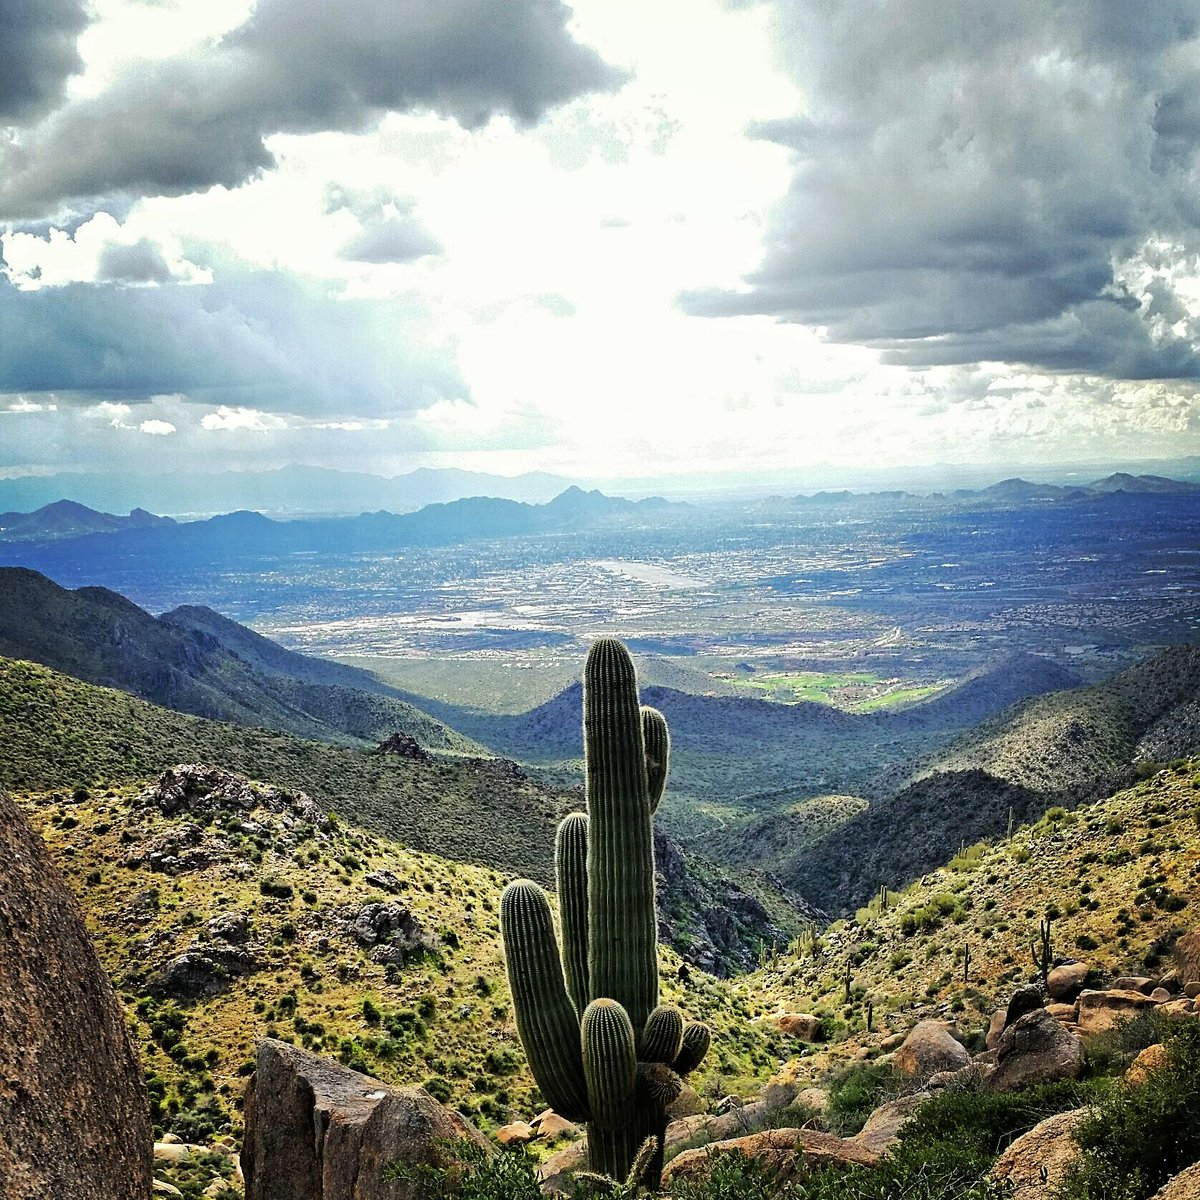 Love RT @azcentral: #AZ365: The stunning desert view from the Tom's Thumb Trail in #Scottsdale http://t.co/QsFIelGmGt http://t.co/sejmpFIw9z